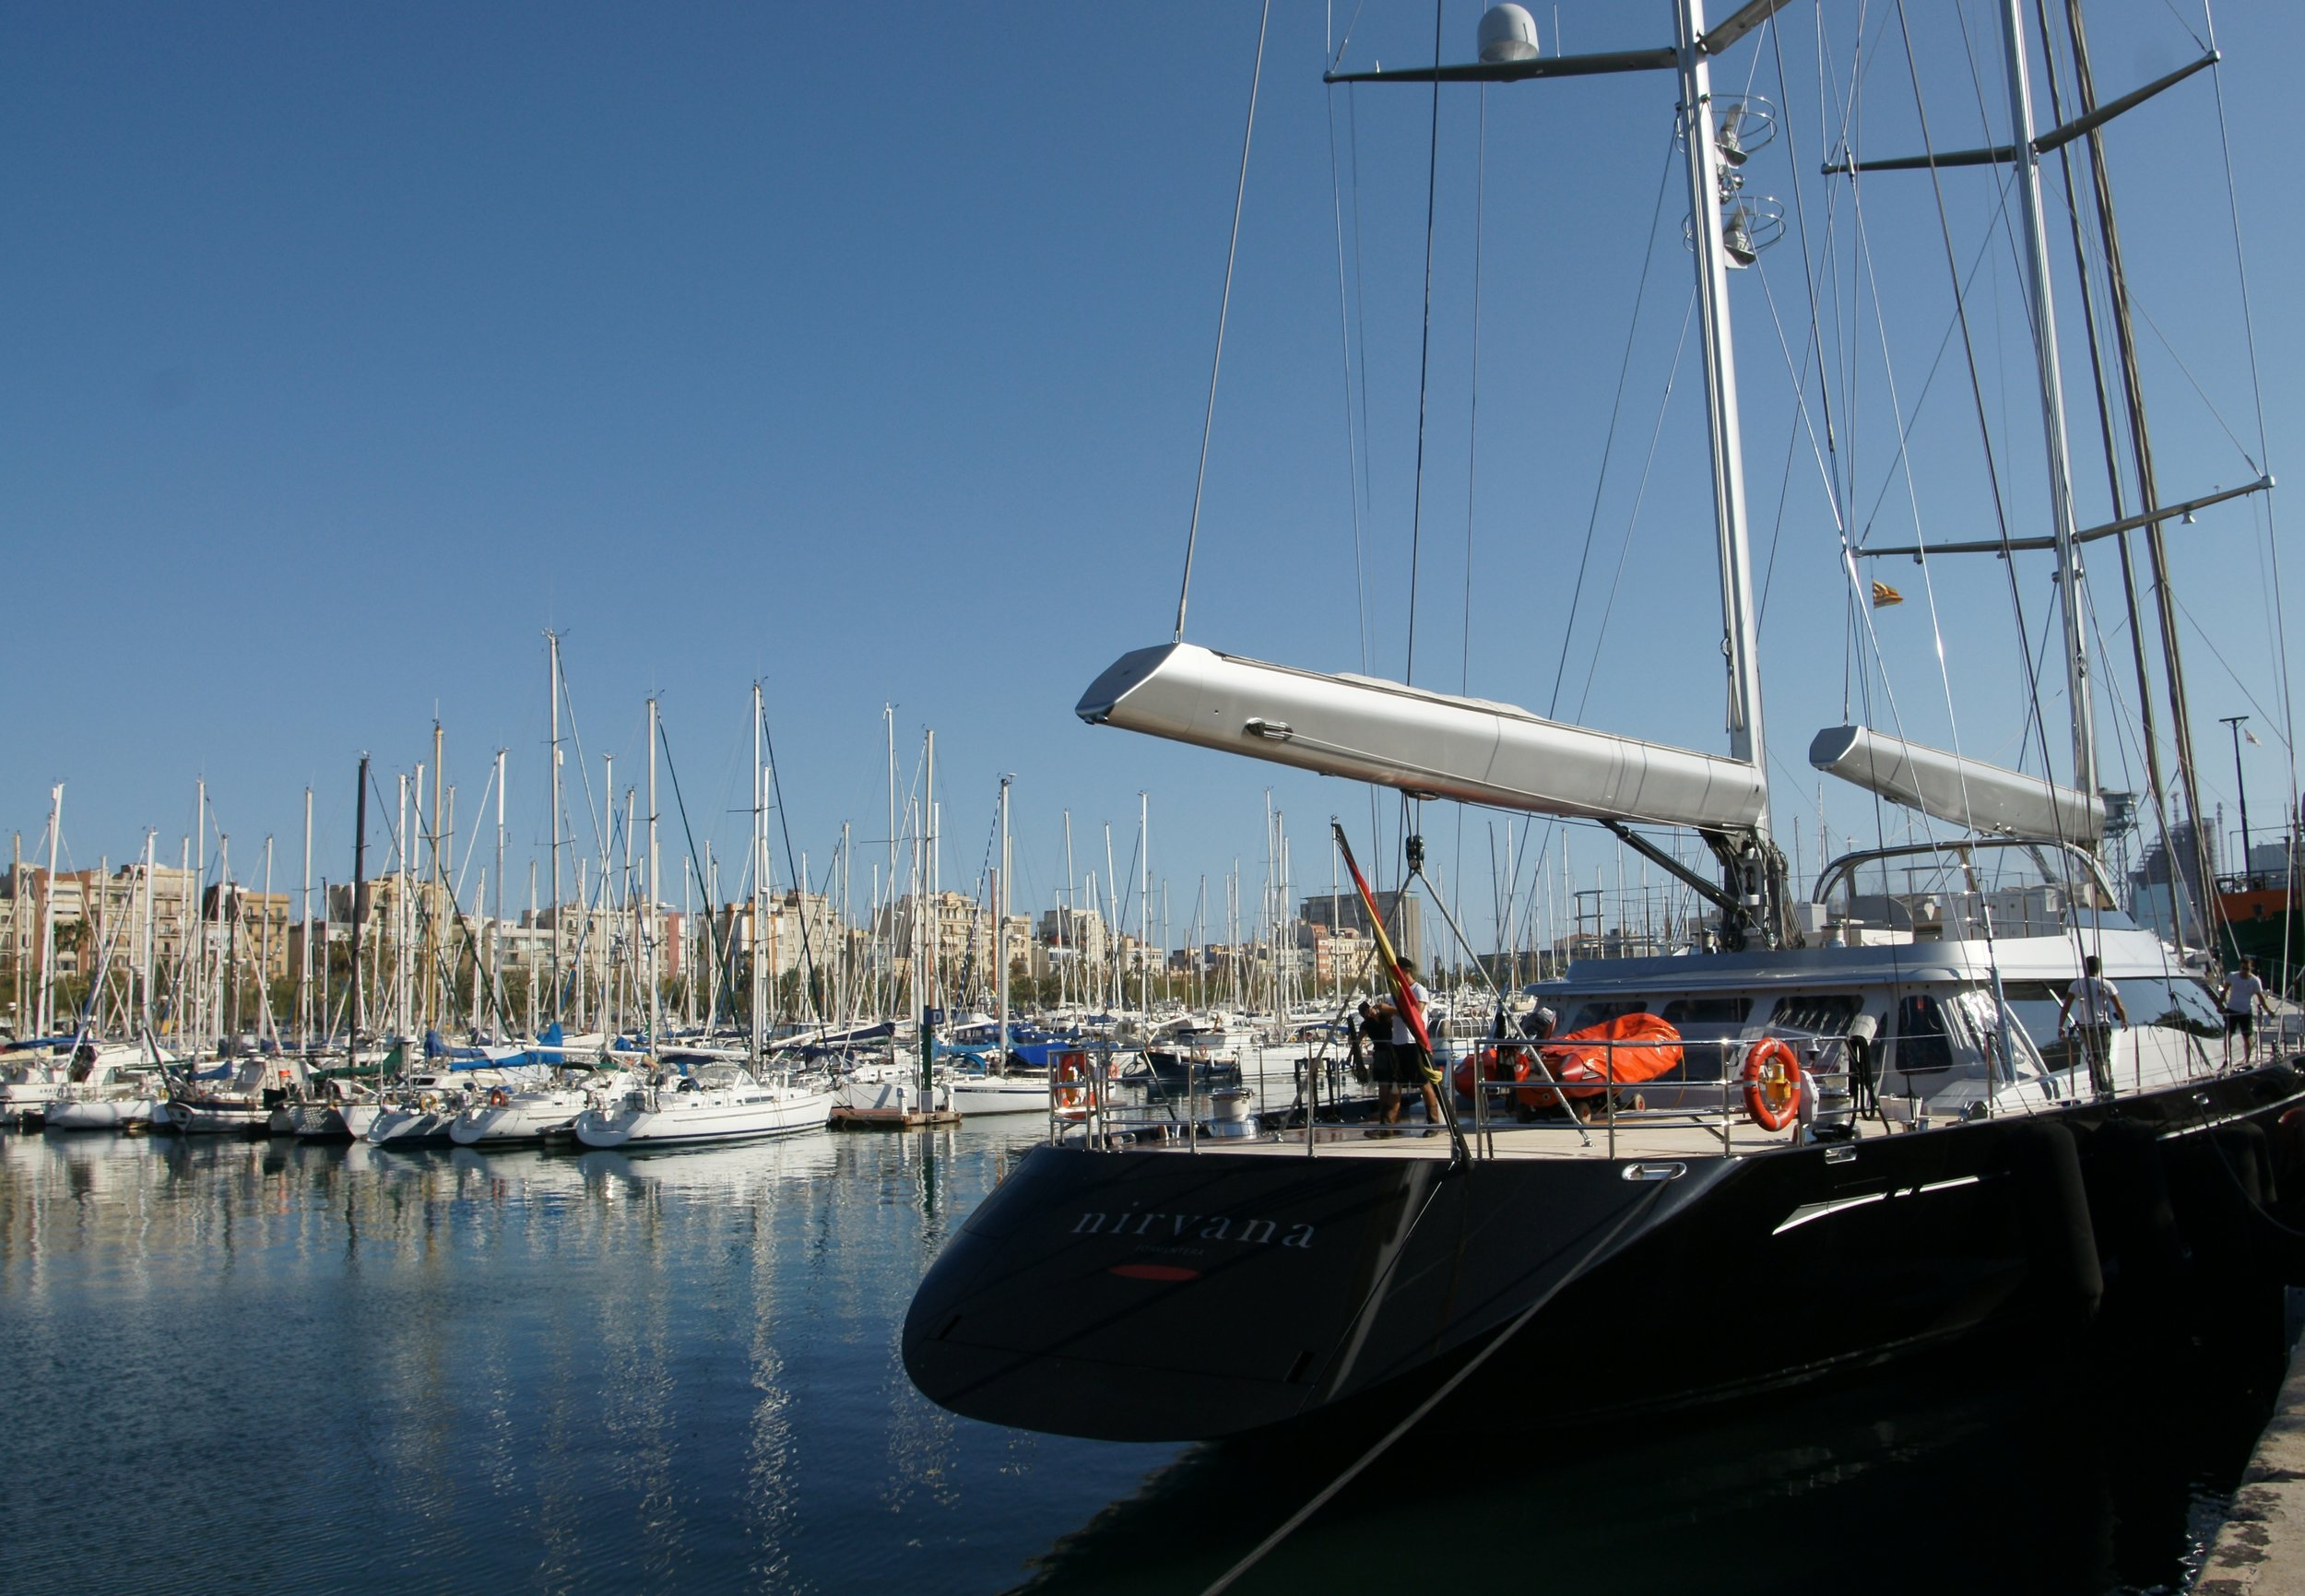 Barcelona's Marina Port Vell is a popular location to spend the winter months. Image by Böhringer Friedrich.